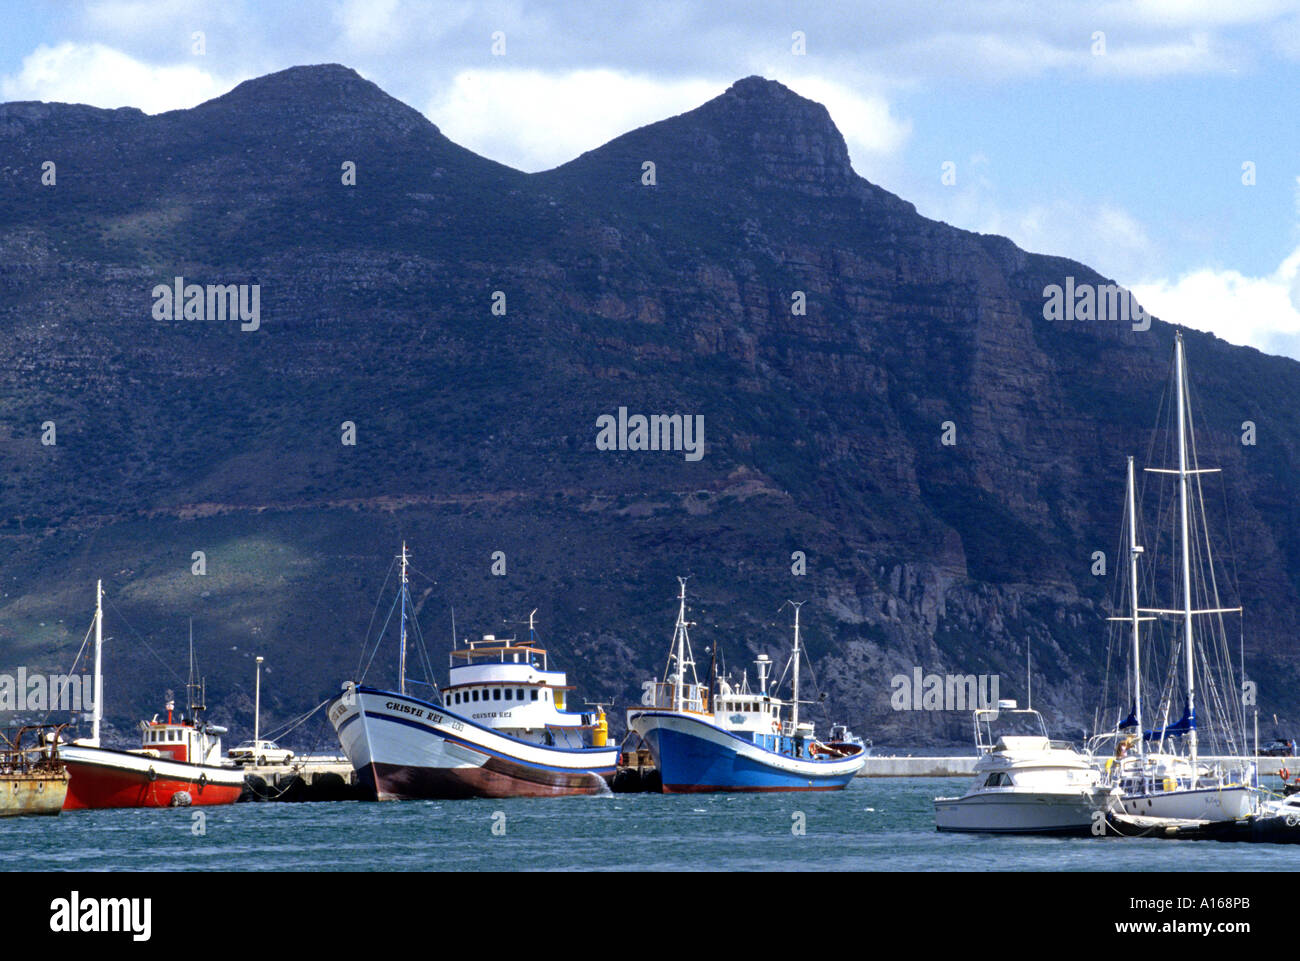 Hout Bay Boat Port Harbour Cape South Africa Sea - Stock Image